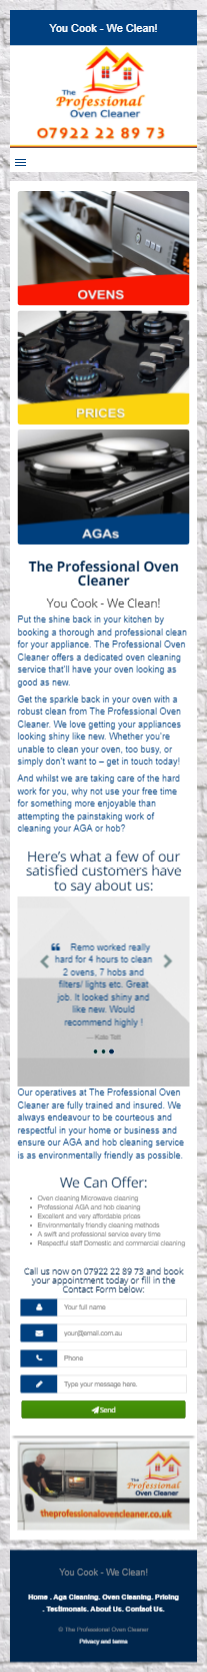 The Professional oven cleaner mobile site